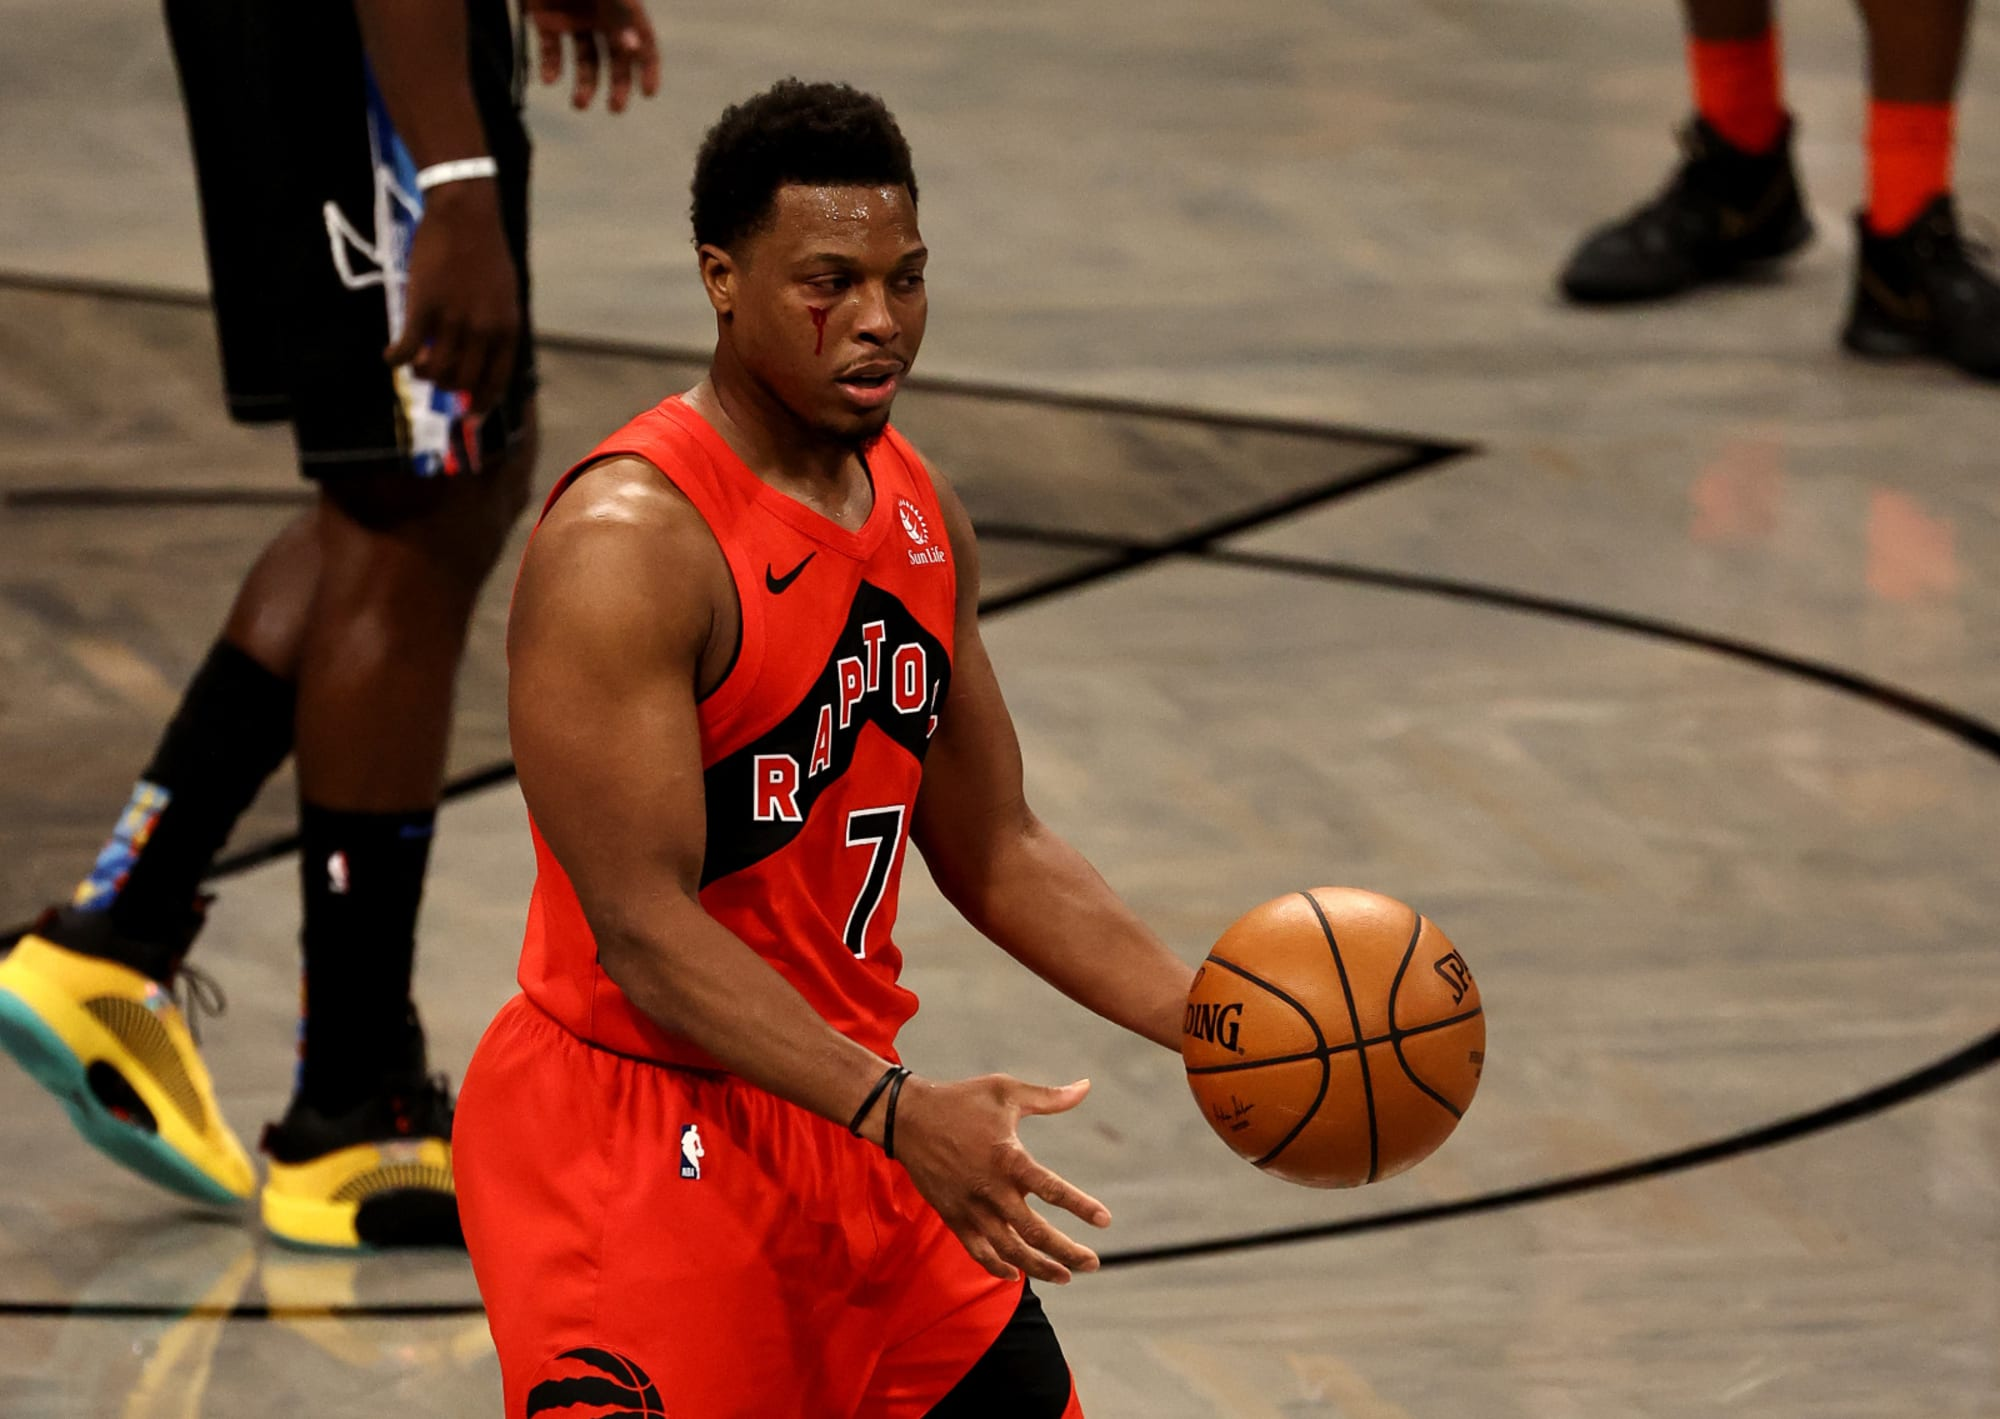 Raptors: Kyle Lowry's late-game heroics helps Toronto beat Nets in controversial game